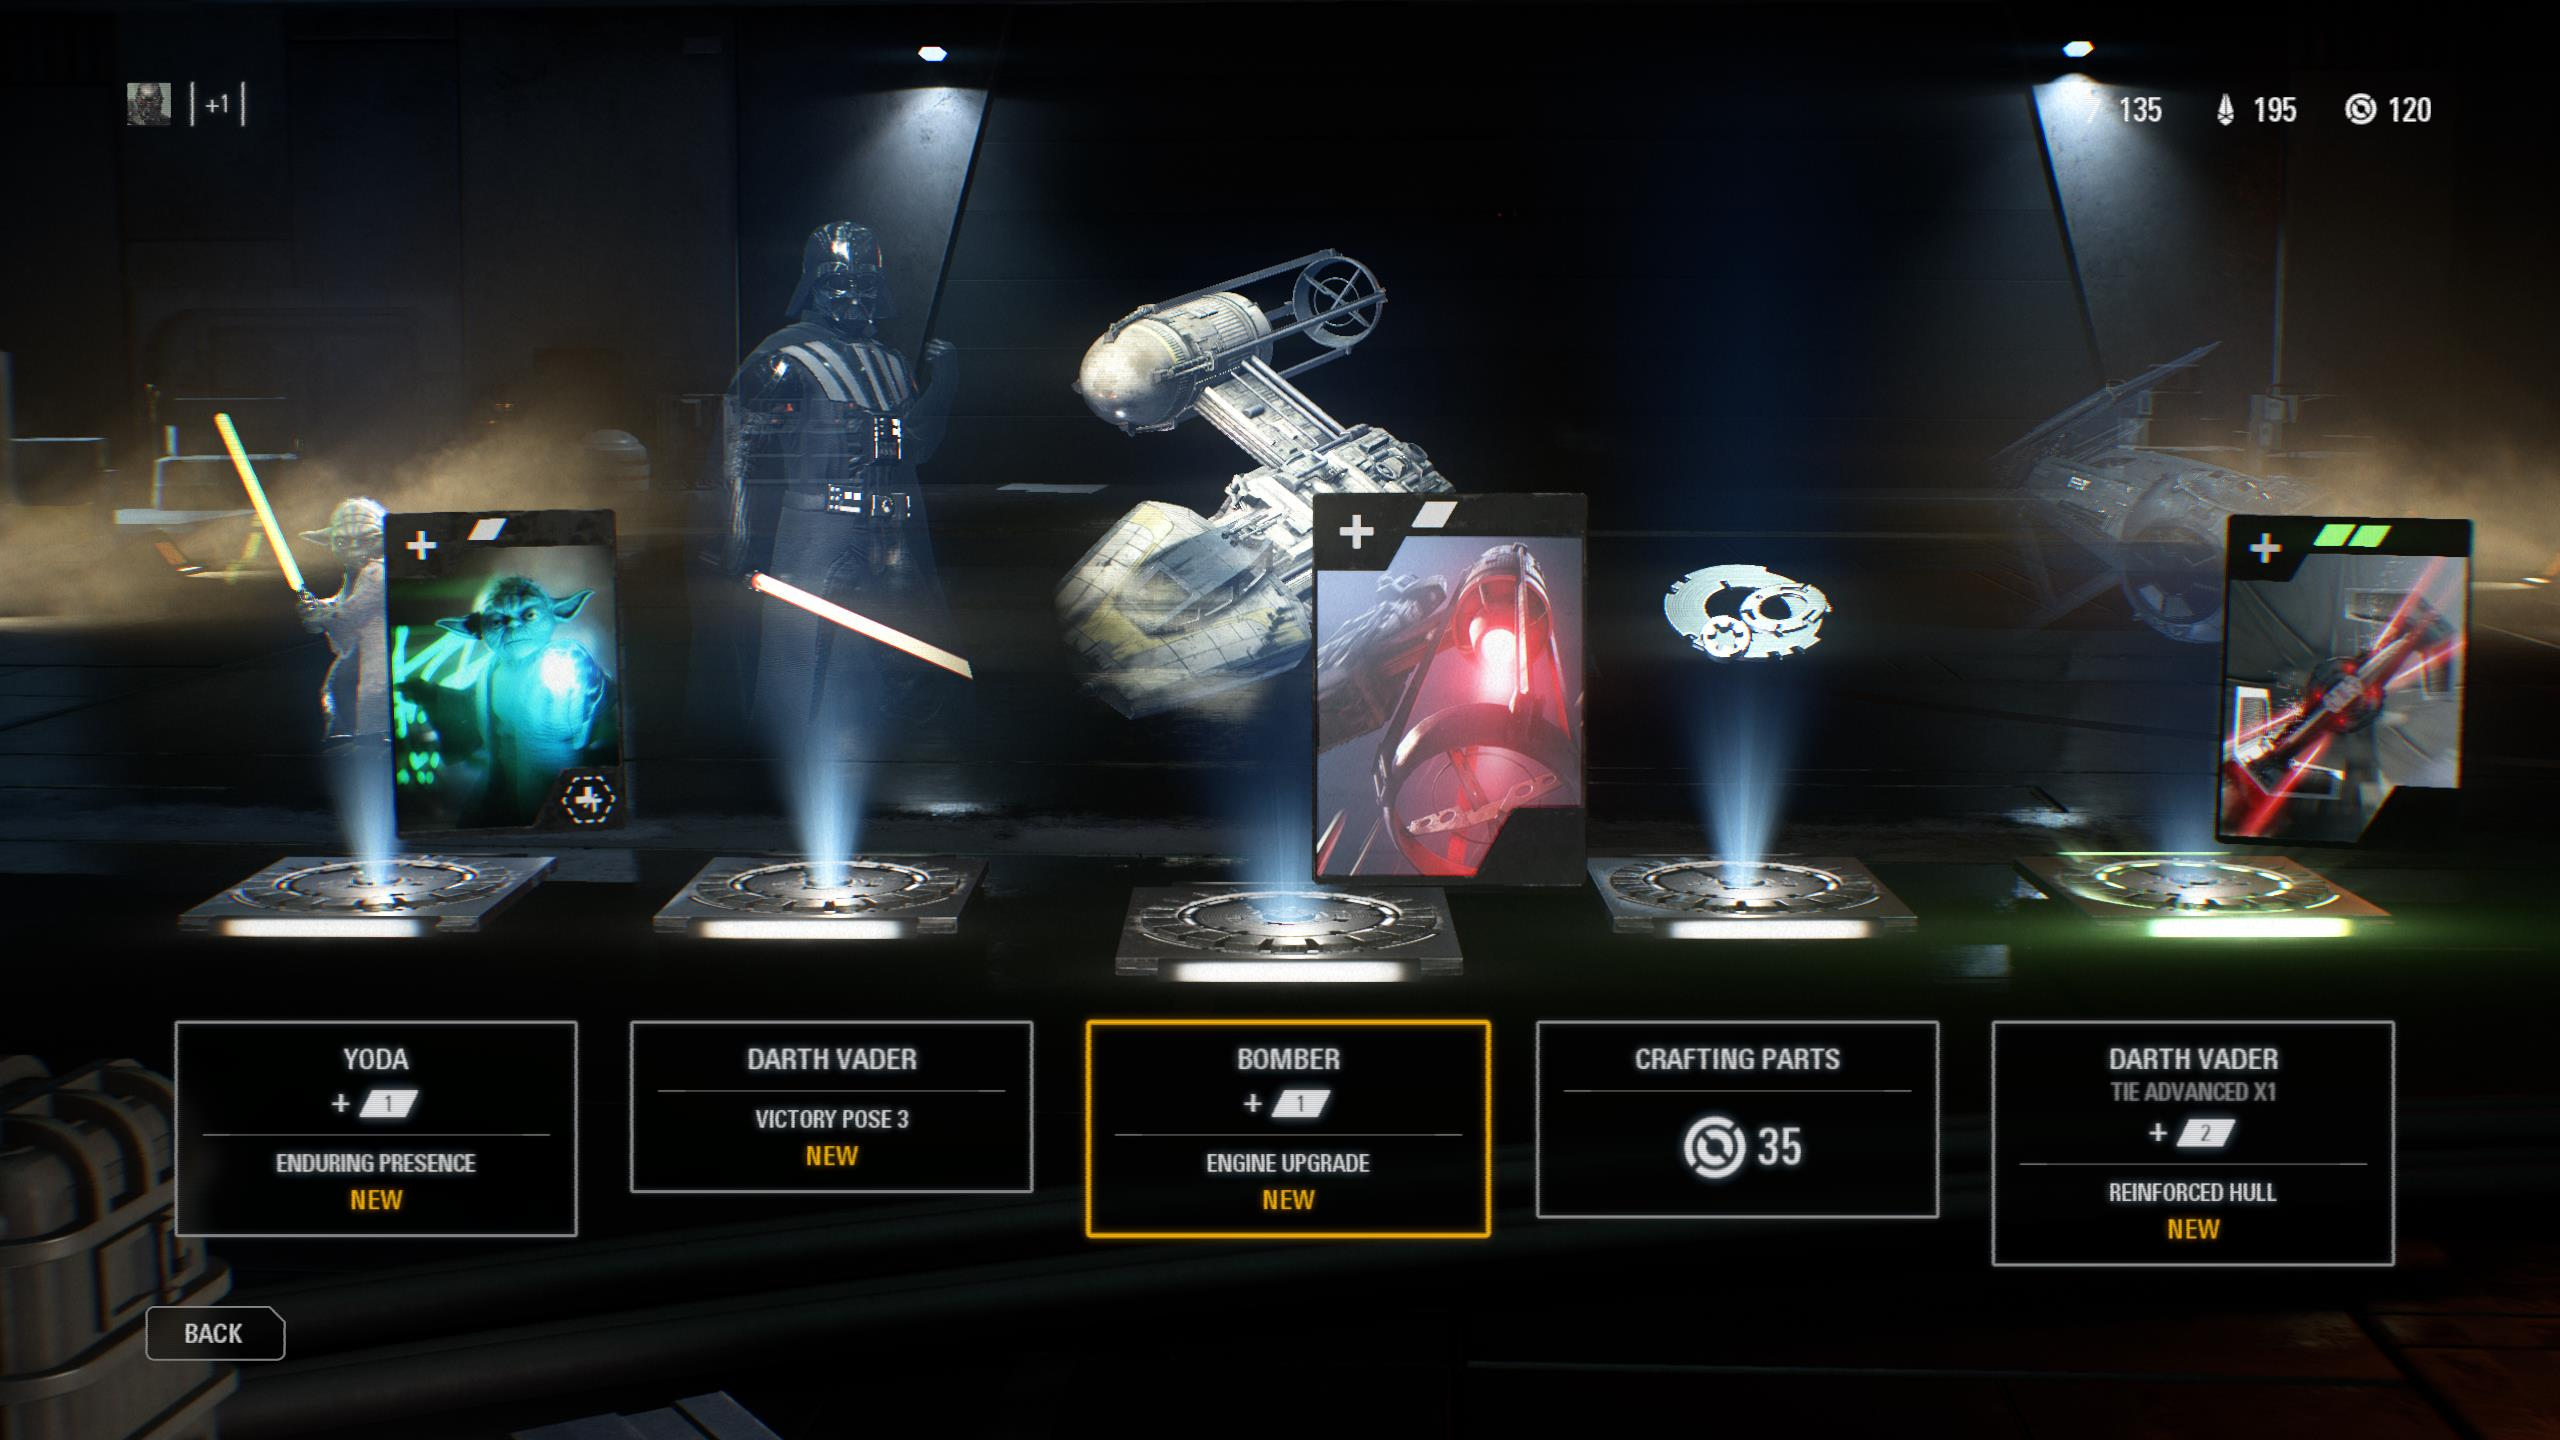 The menu system in Battlefront 2